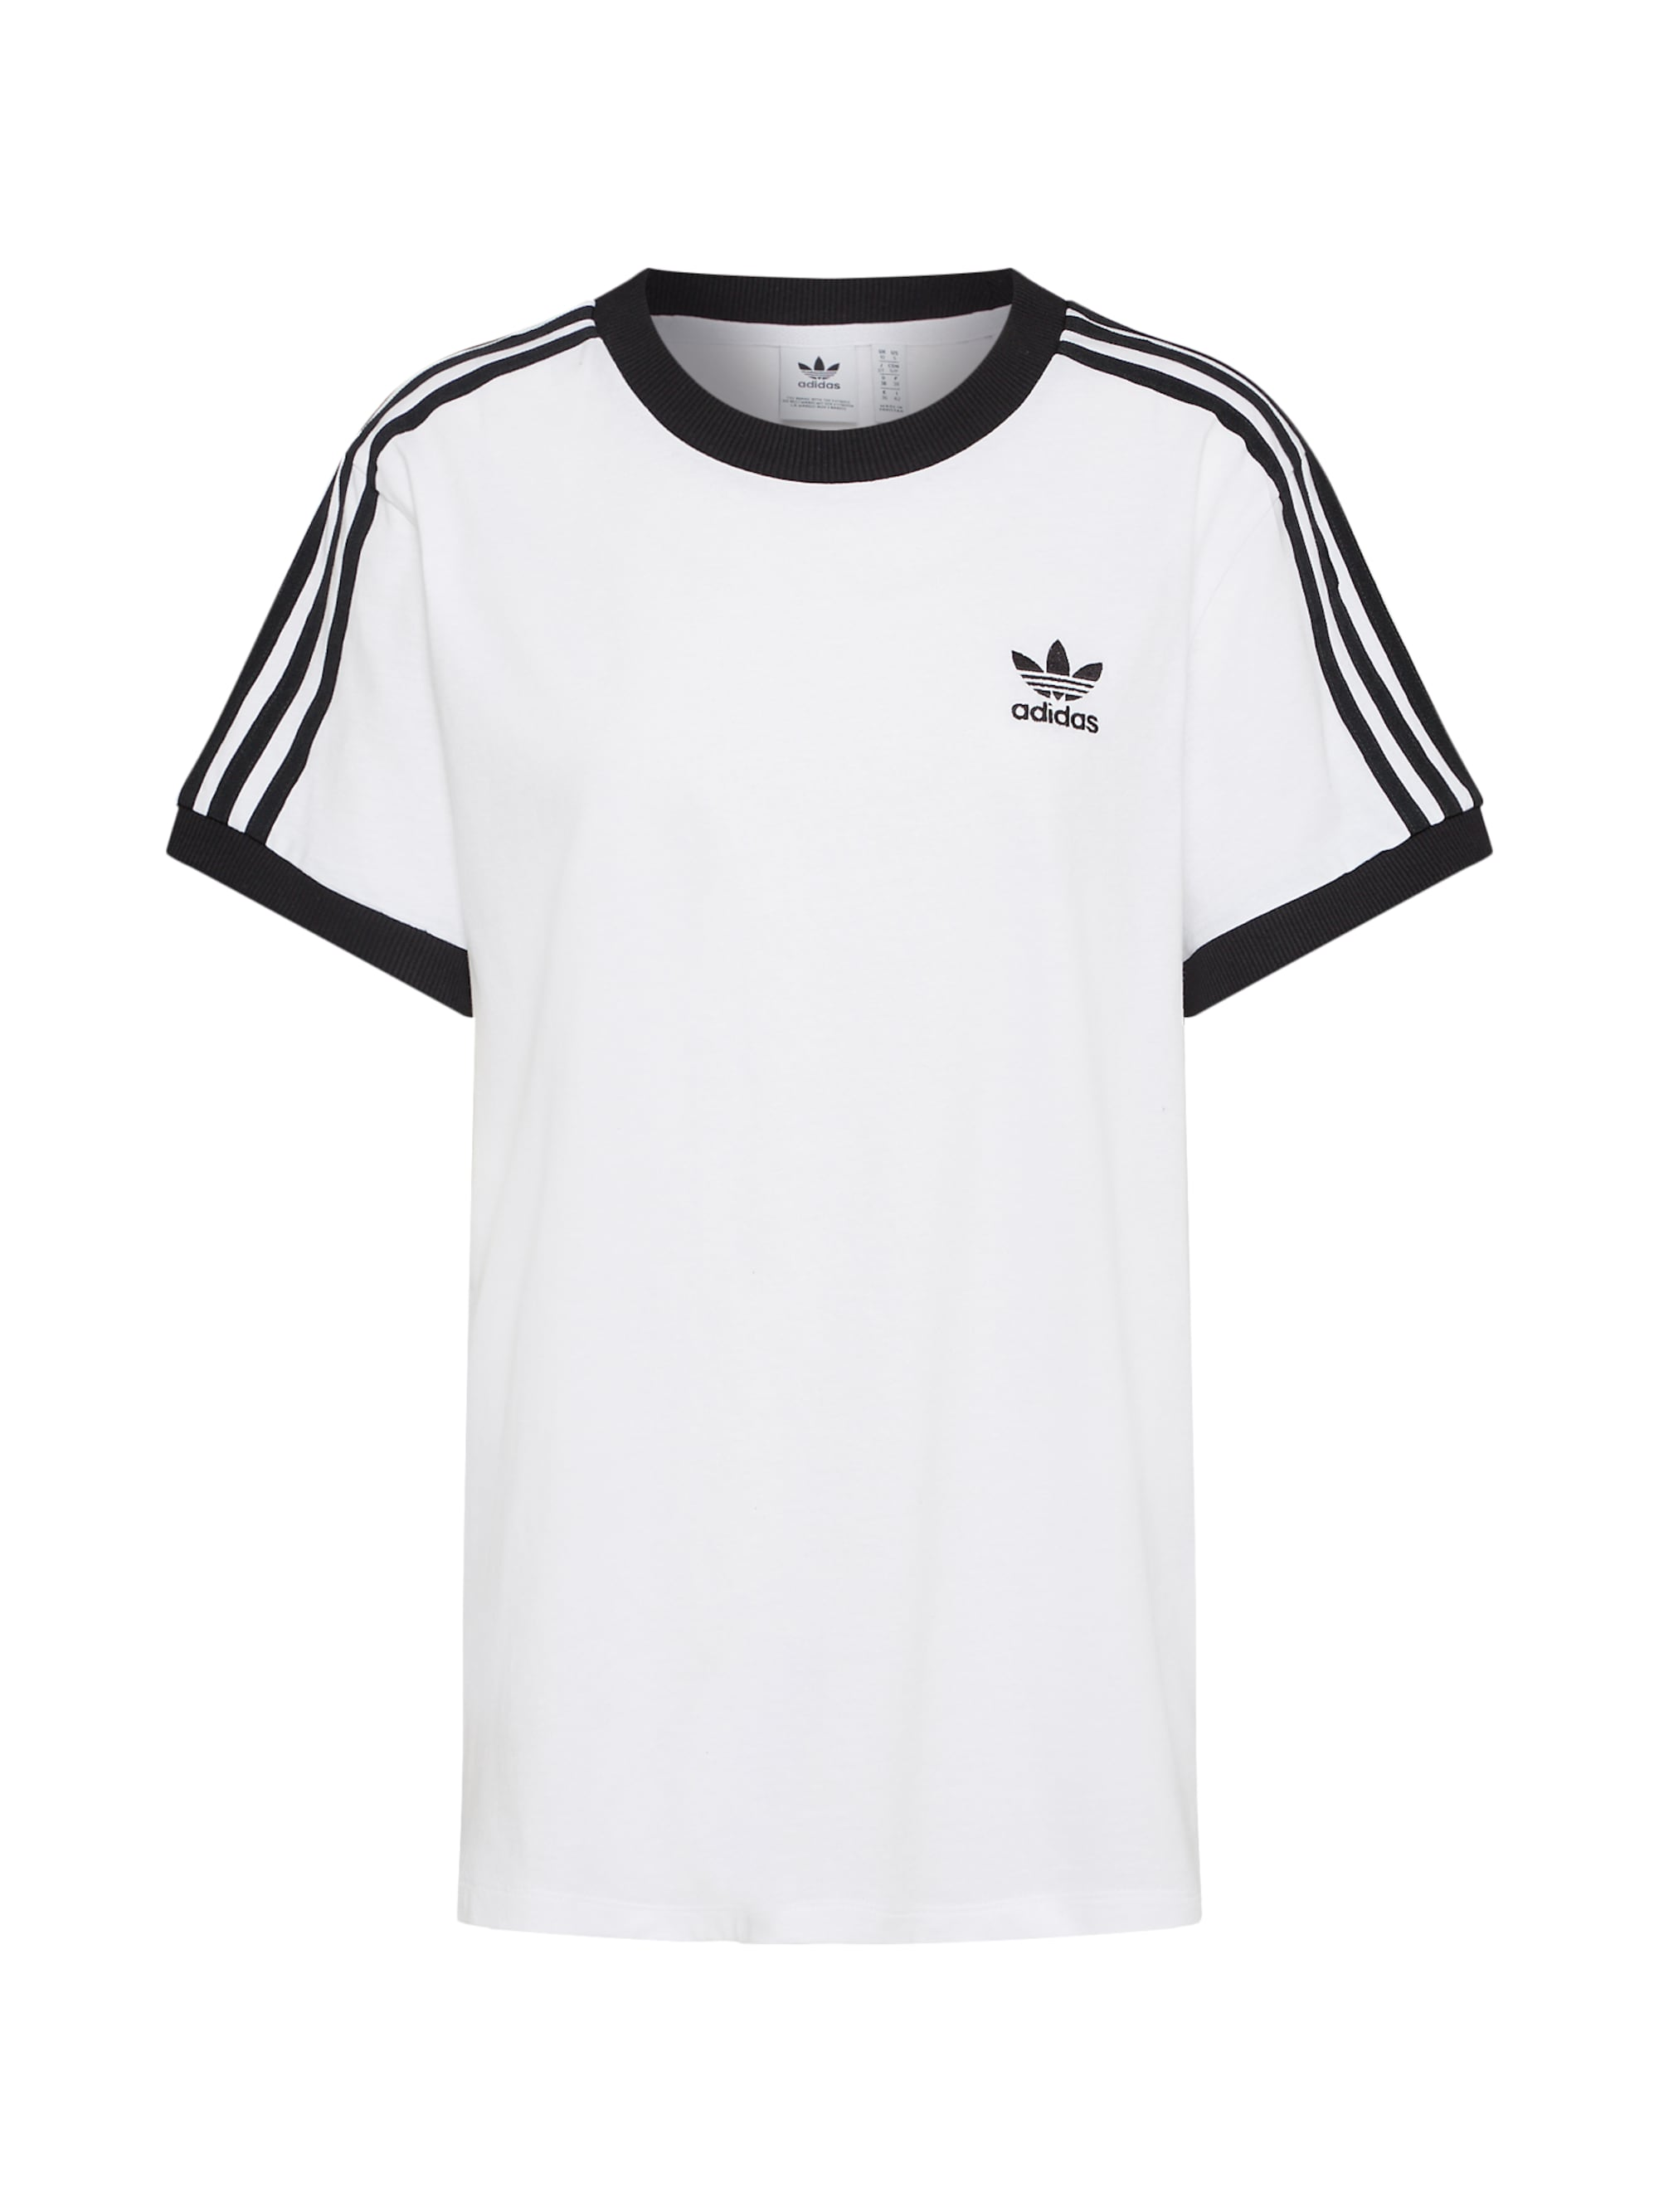 Image of 3 Stripes T-Shirt